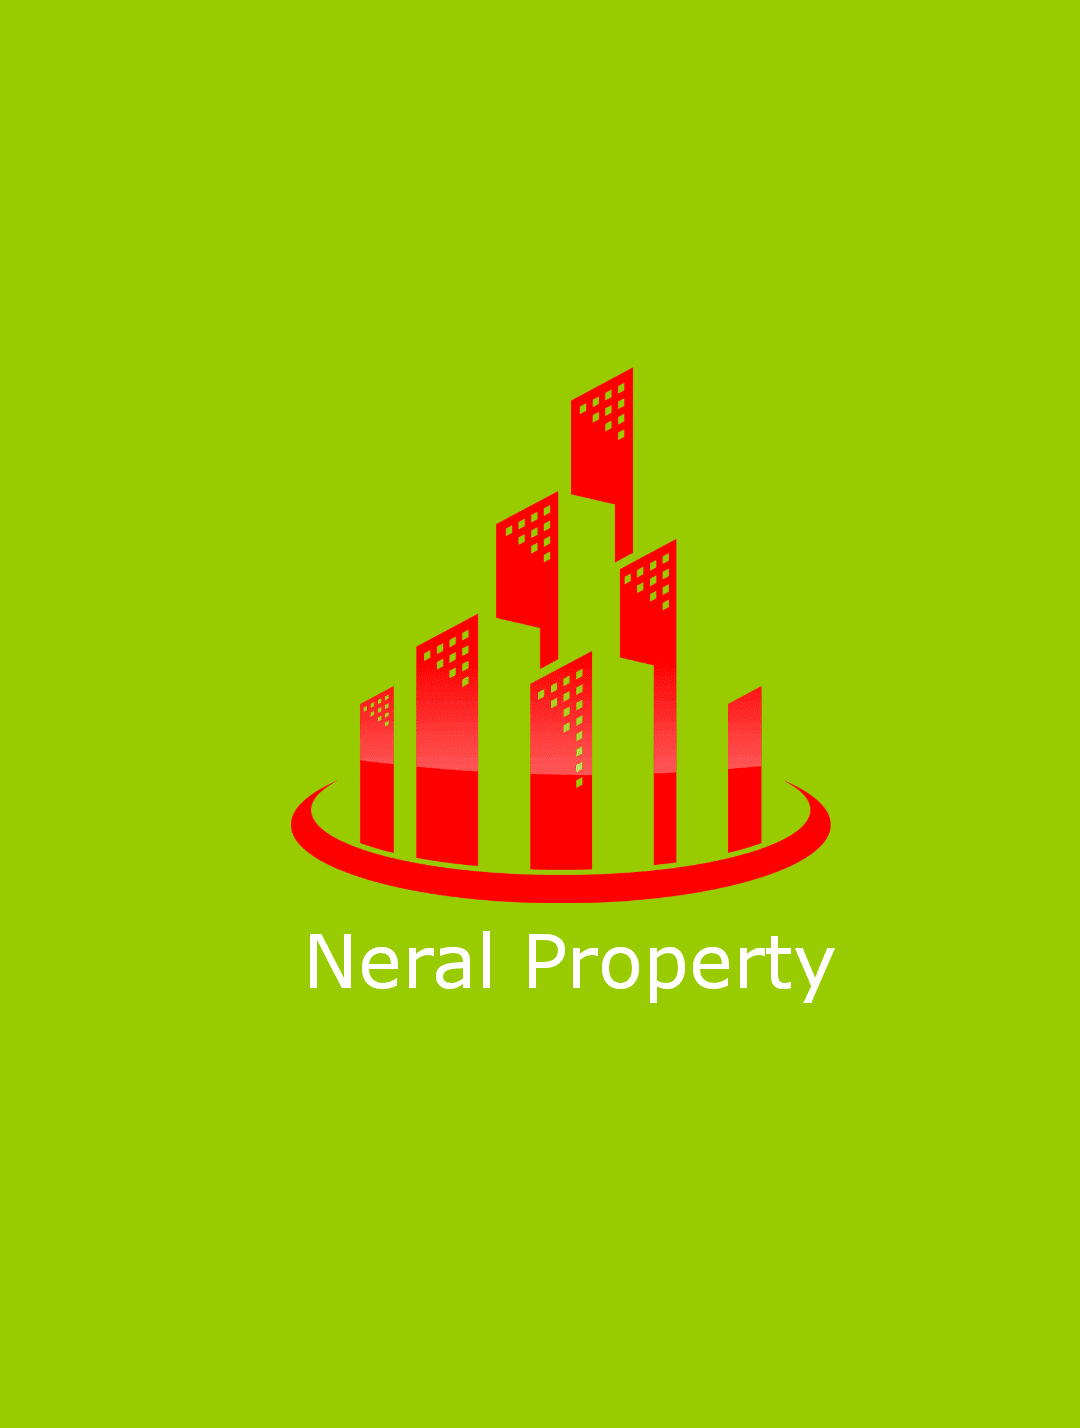 Neral Property